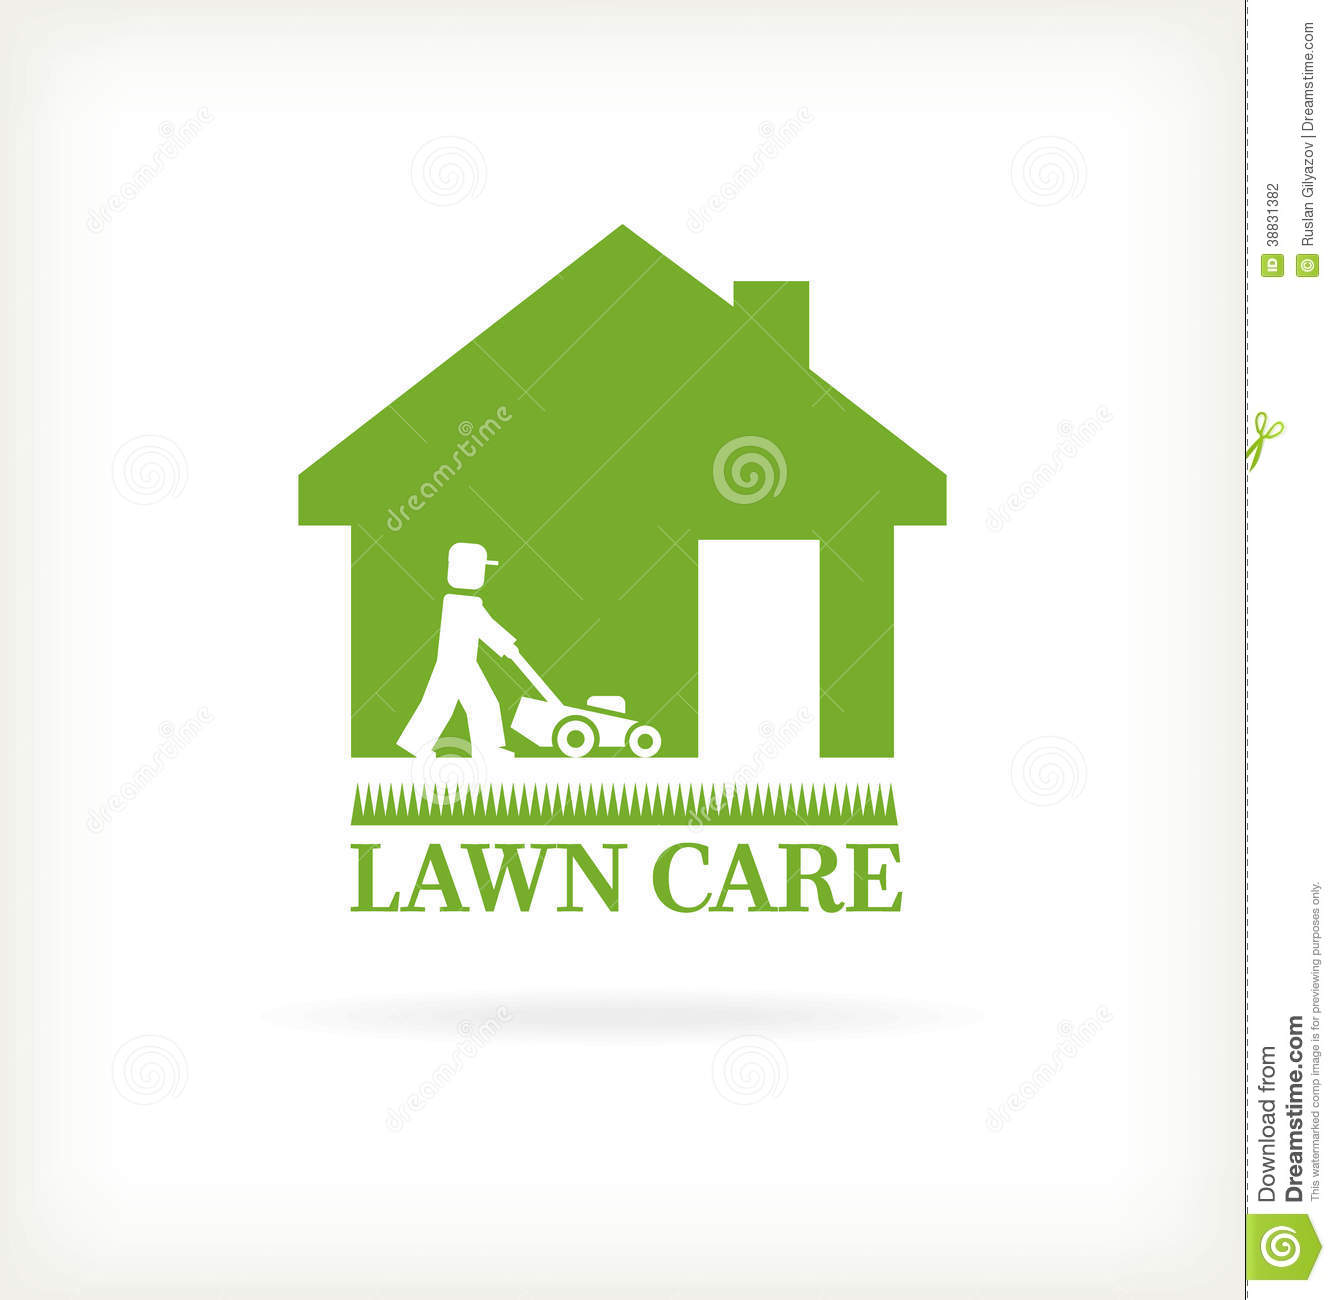 Lawn Care Vector Lawn care symbol. vector illustration. mr: no; pr: no